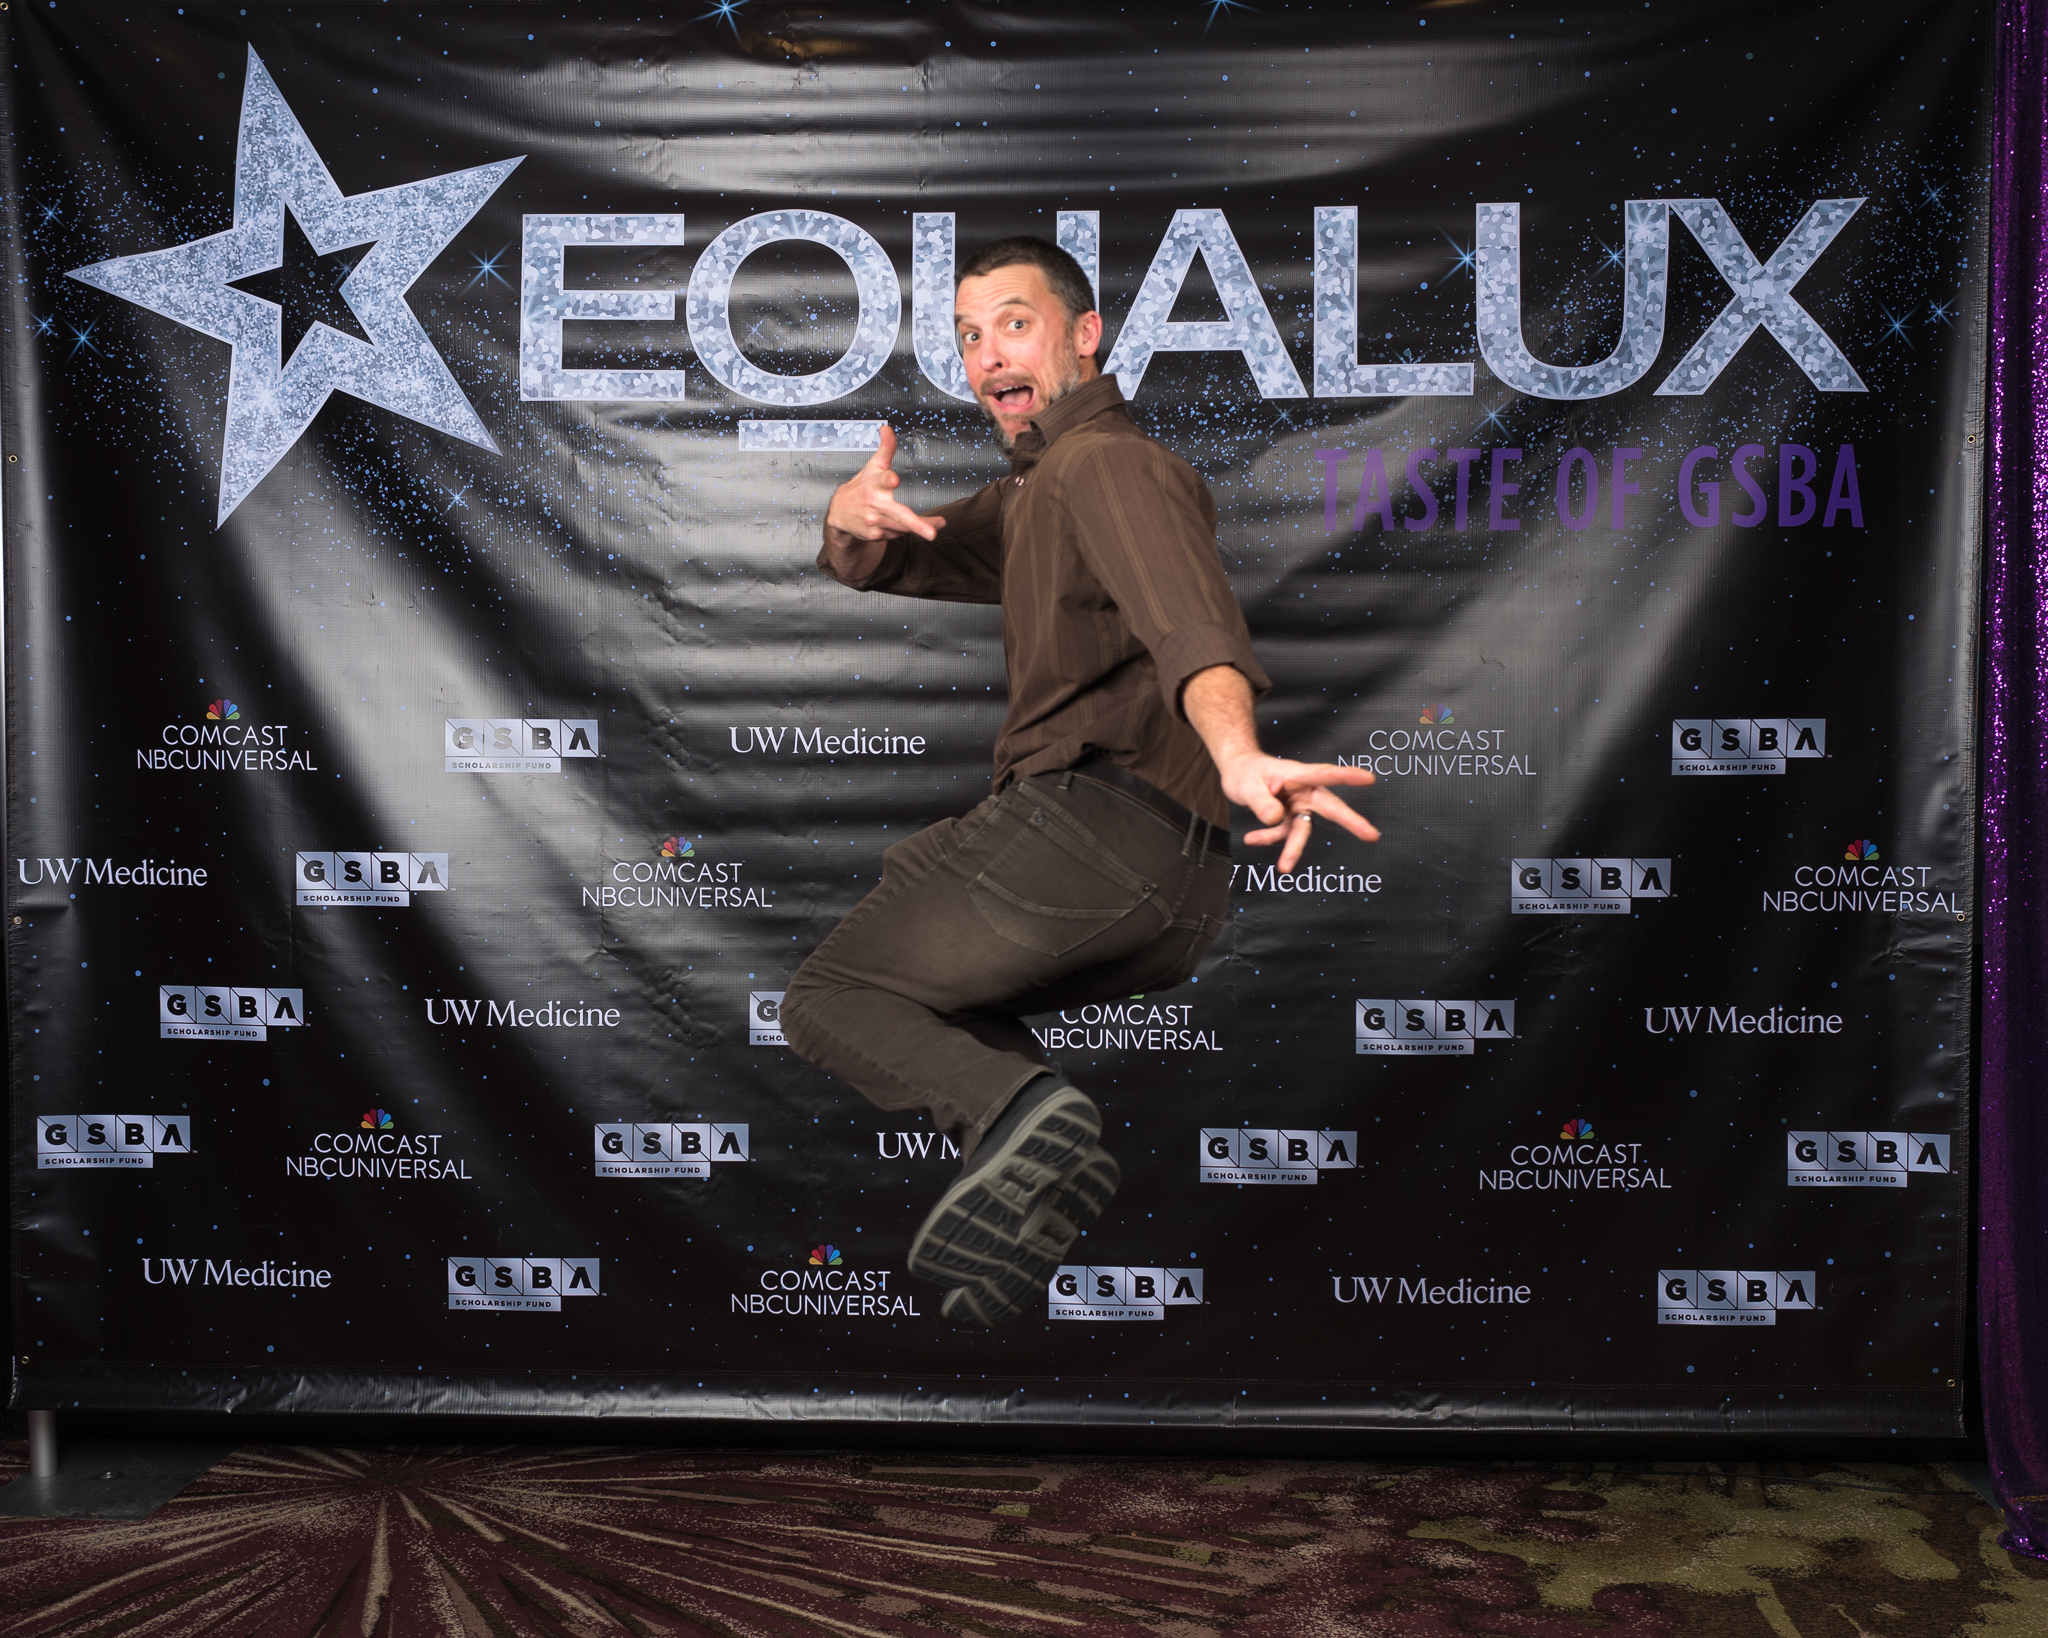 111718_GSBA EQUALUX at The Westin Seattle (Credit- Nate Gowdy)-06.jpg